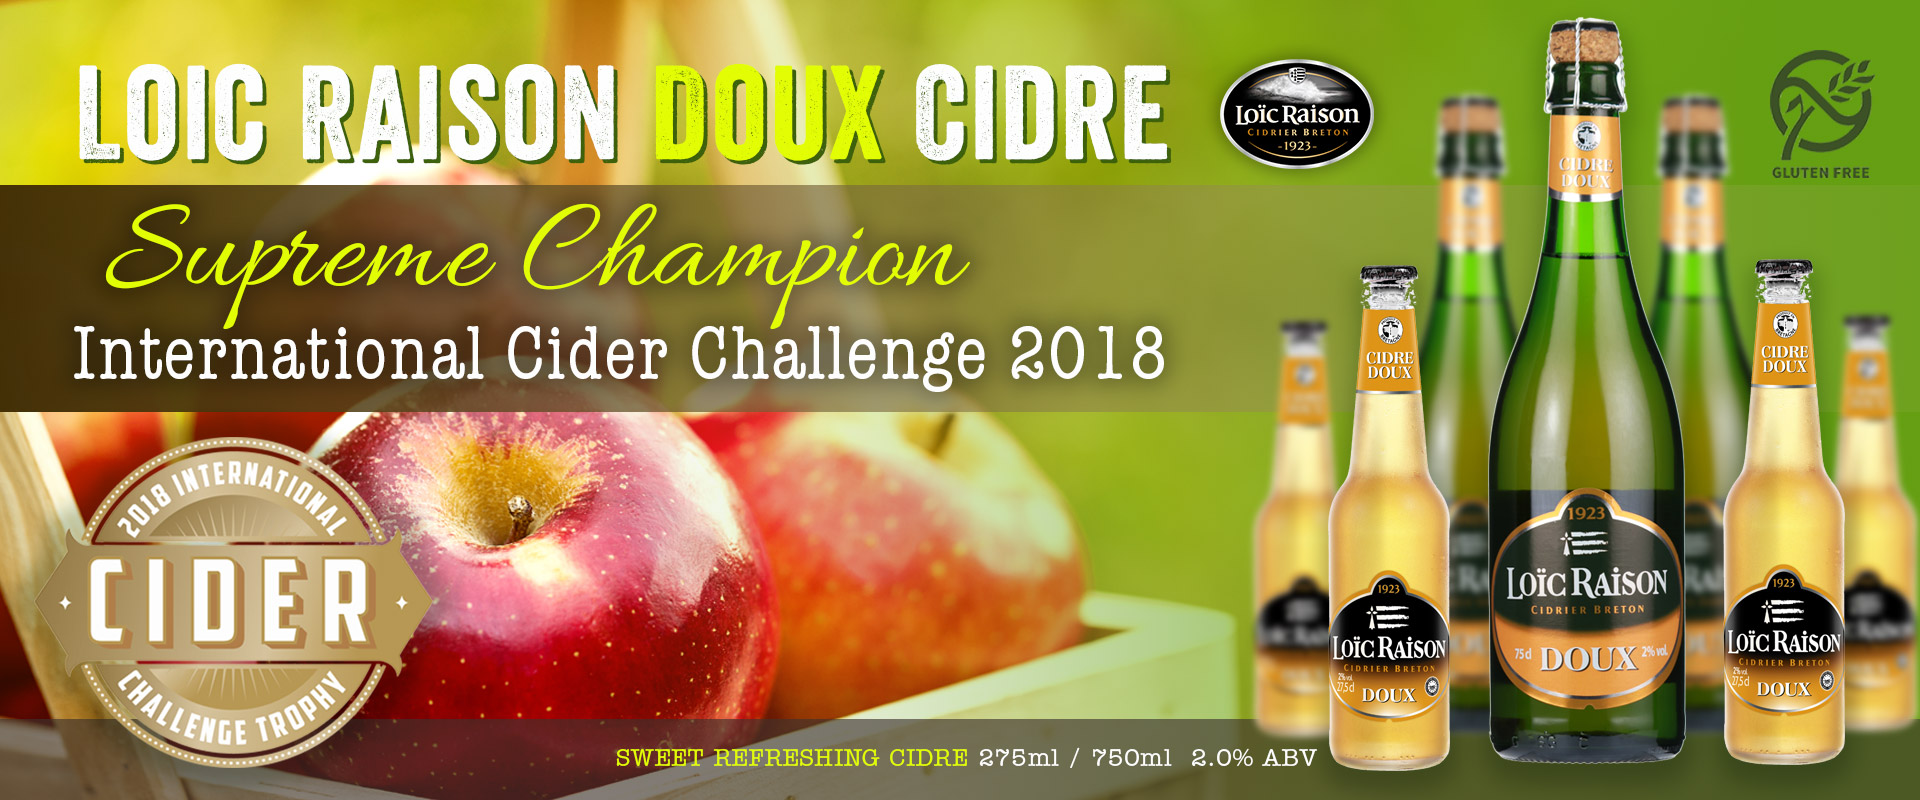 Loic Raison Supreme Champion Cidre